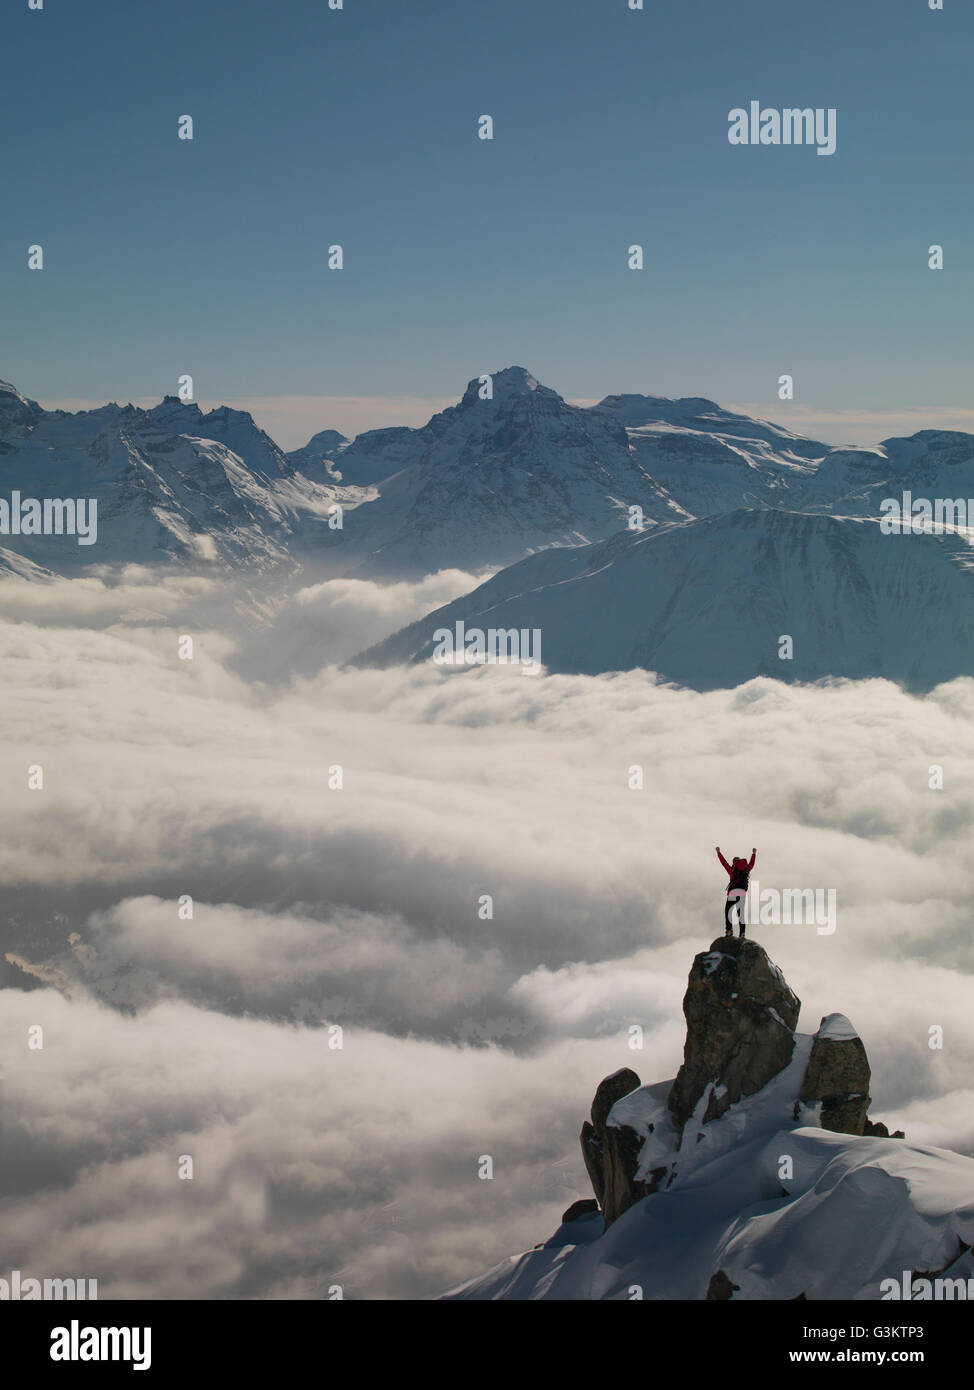 Climber celebrating on peak emerging from fog, Bettmeralp, Valais, Switzerland - Stock Image